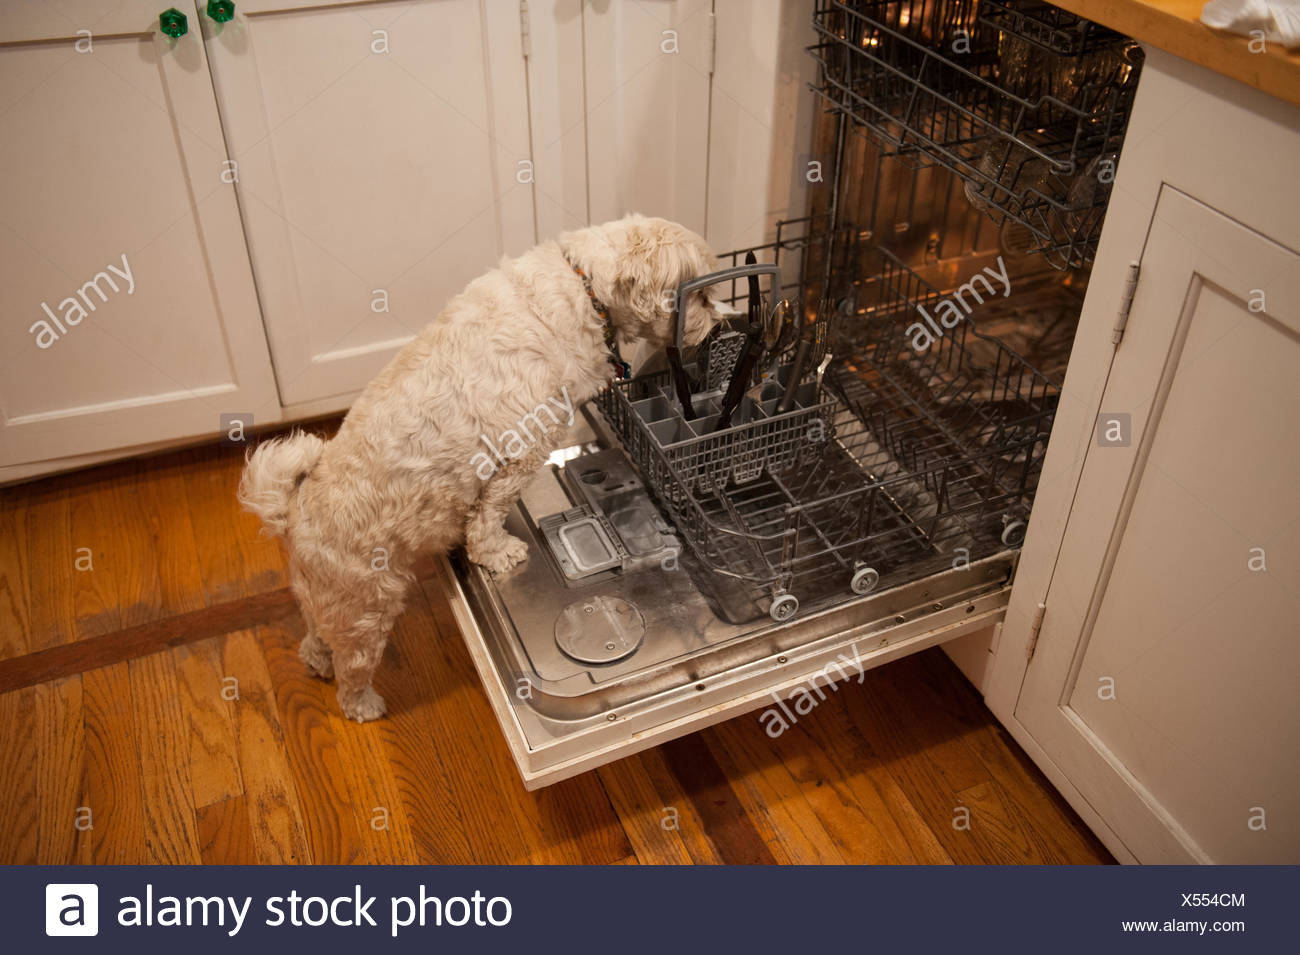 Dirty Dishes Dishwasher Stock Photos & Dirty Dishes ...